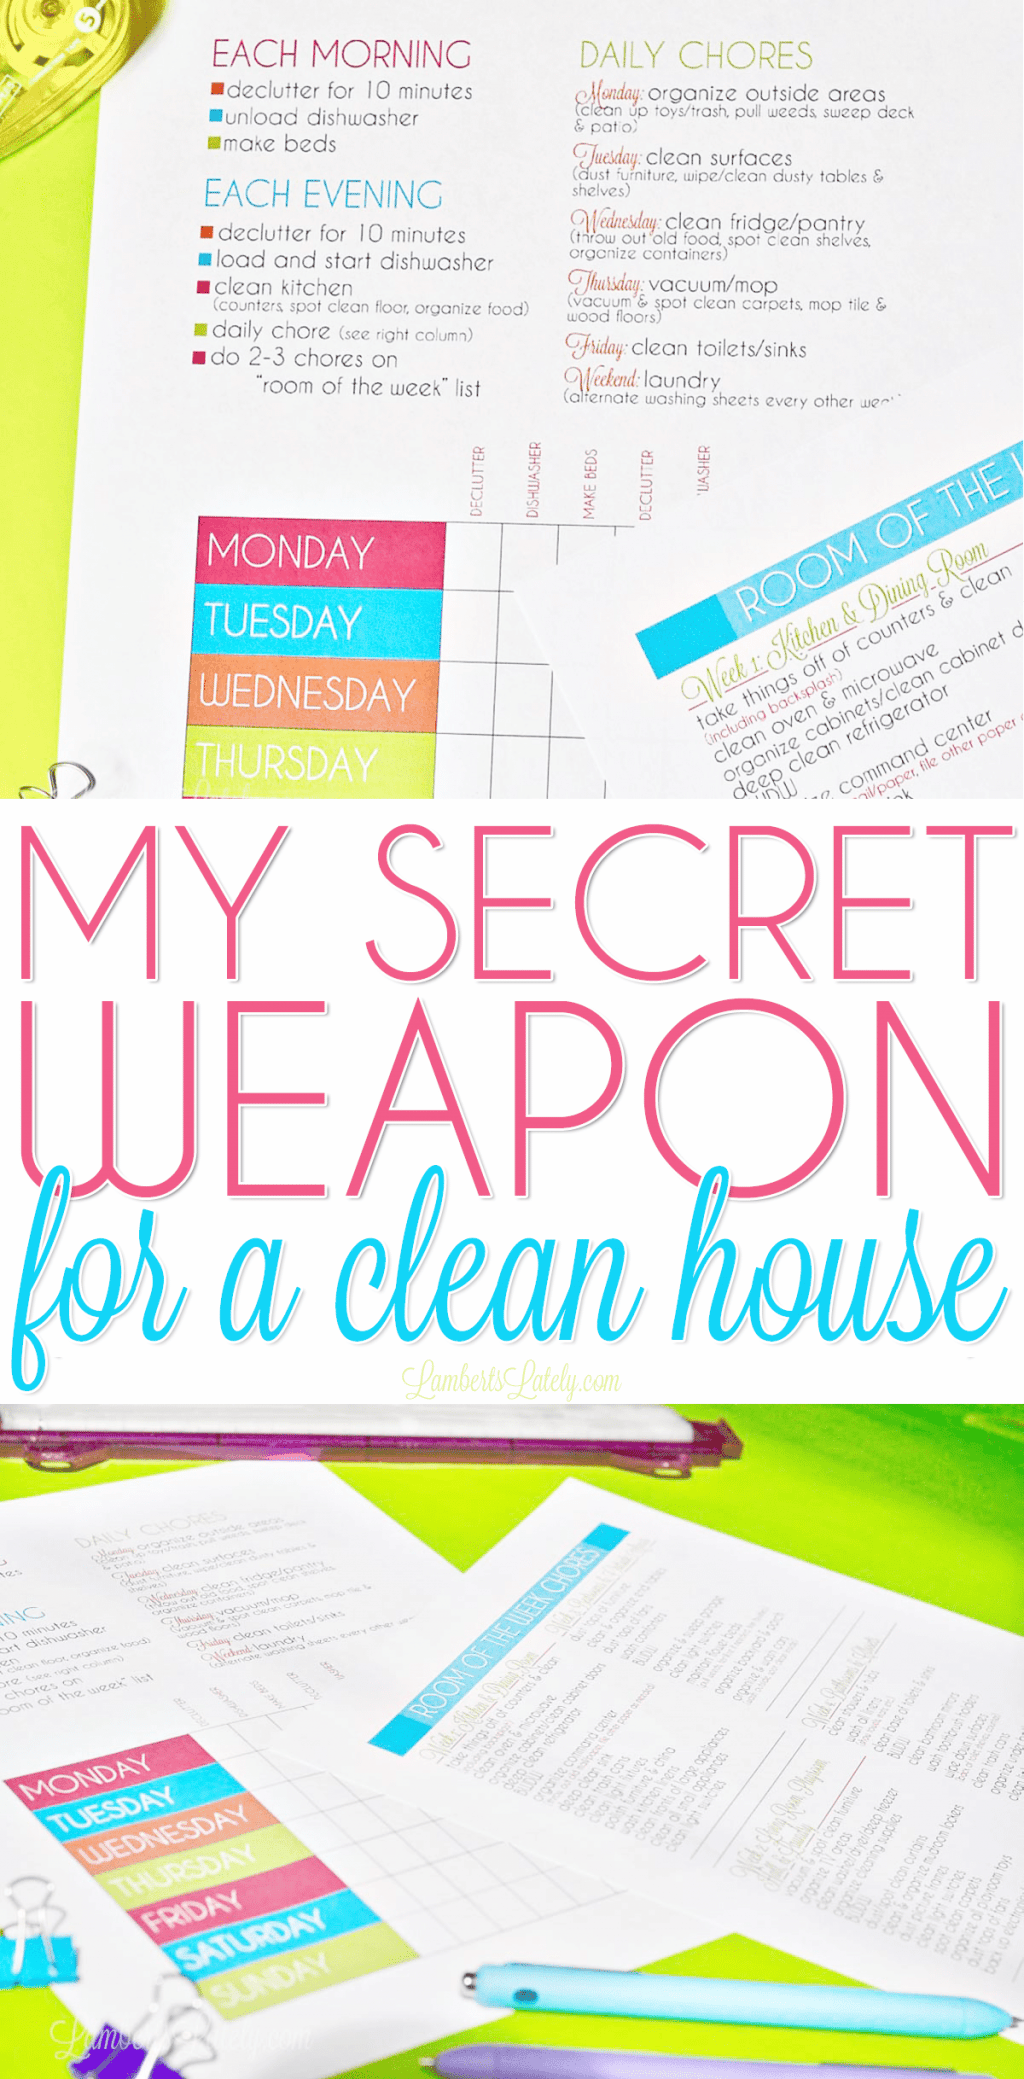 This is an awesome free printable cleaning schedule checklist! I love the bright colors and the fact that it is for both a working mom and a stay at home mom. This template makes weekly/daily cleaning so simple!